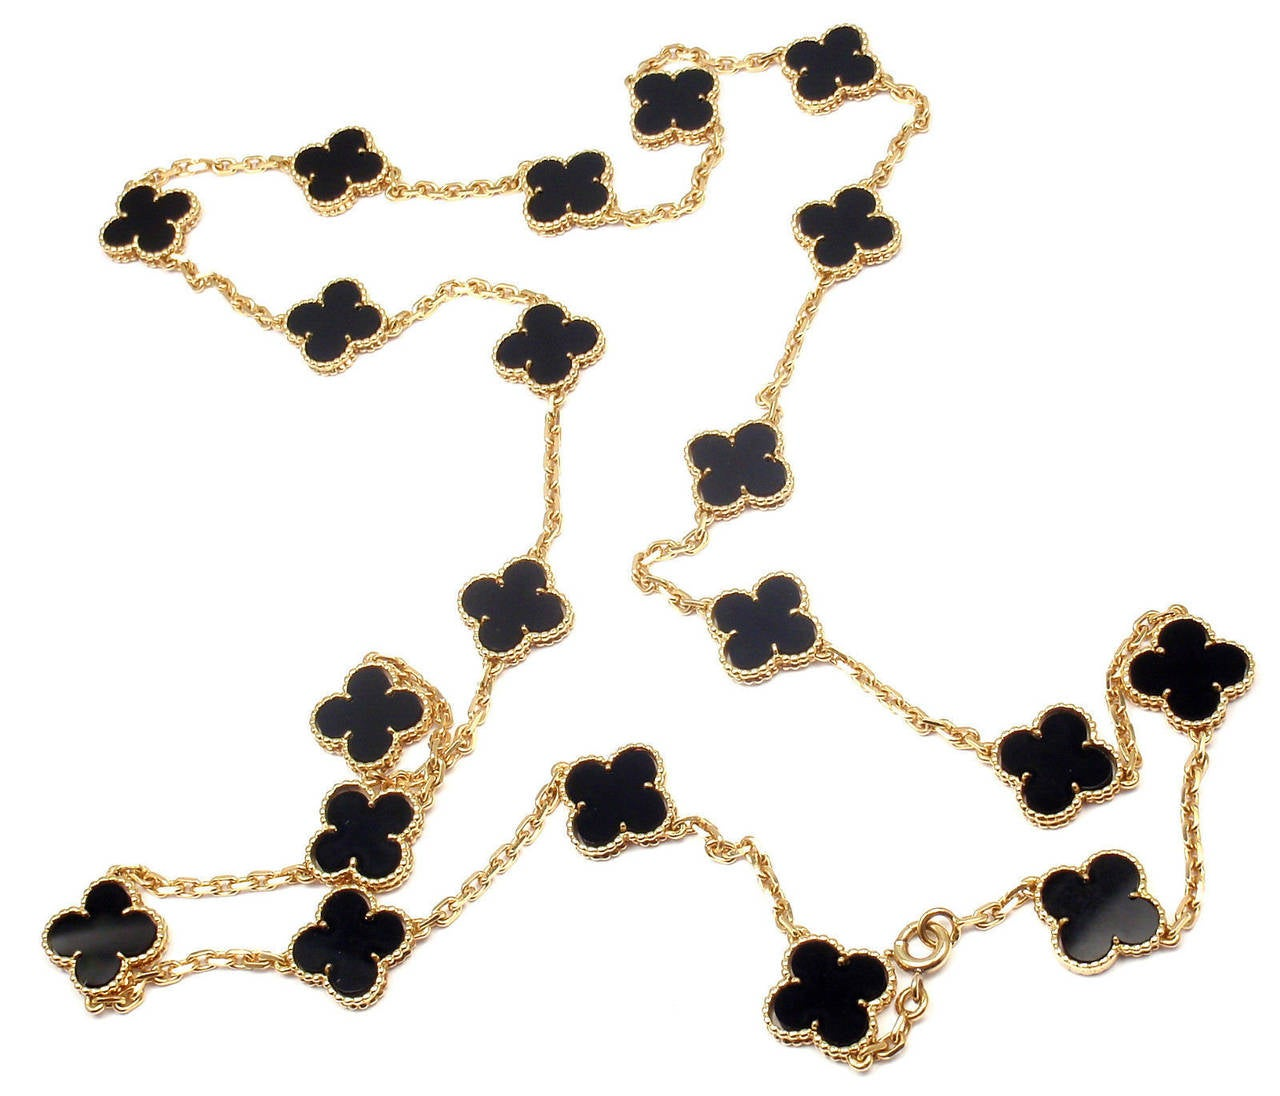 Van Cleef & Arpels Vintage Alhambra Twenty-Motif Black Onyx Gold Necklace In As new Condition For Sale In Southampton, PA